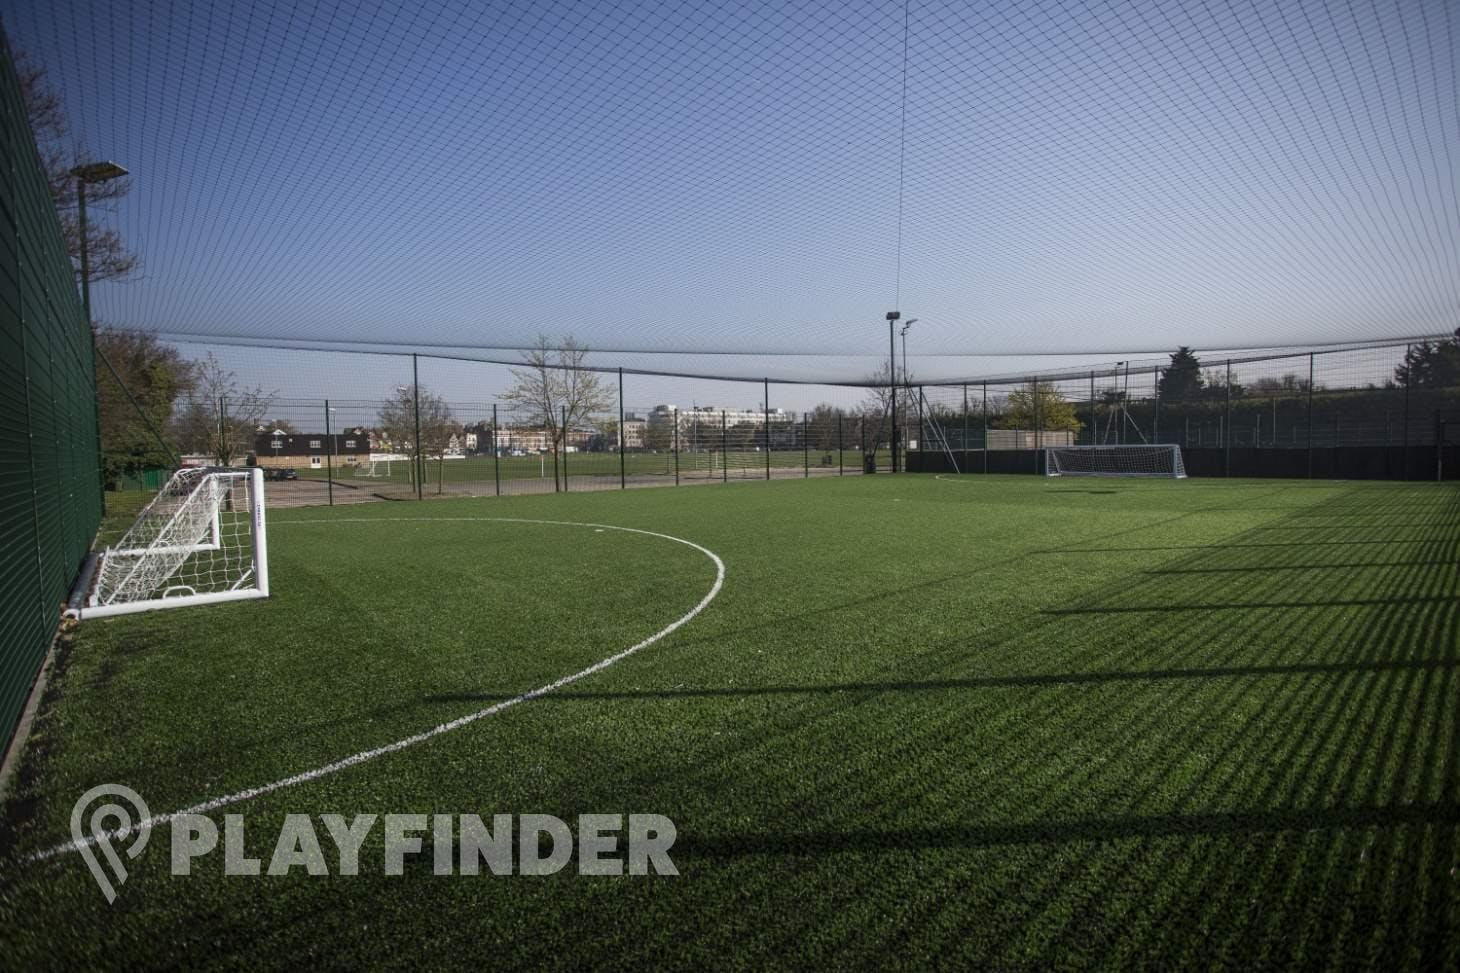 Jubilee Sports Ground (St Dunstan's Enterprises) 5 a side | 3G Astroturf football pitch